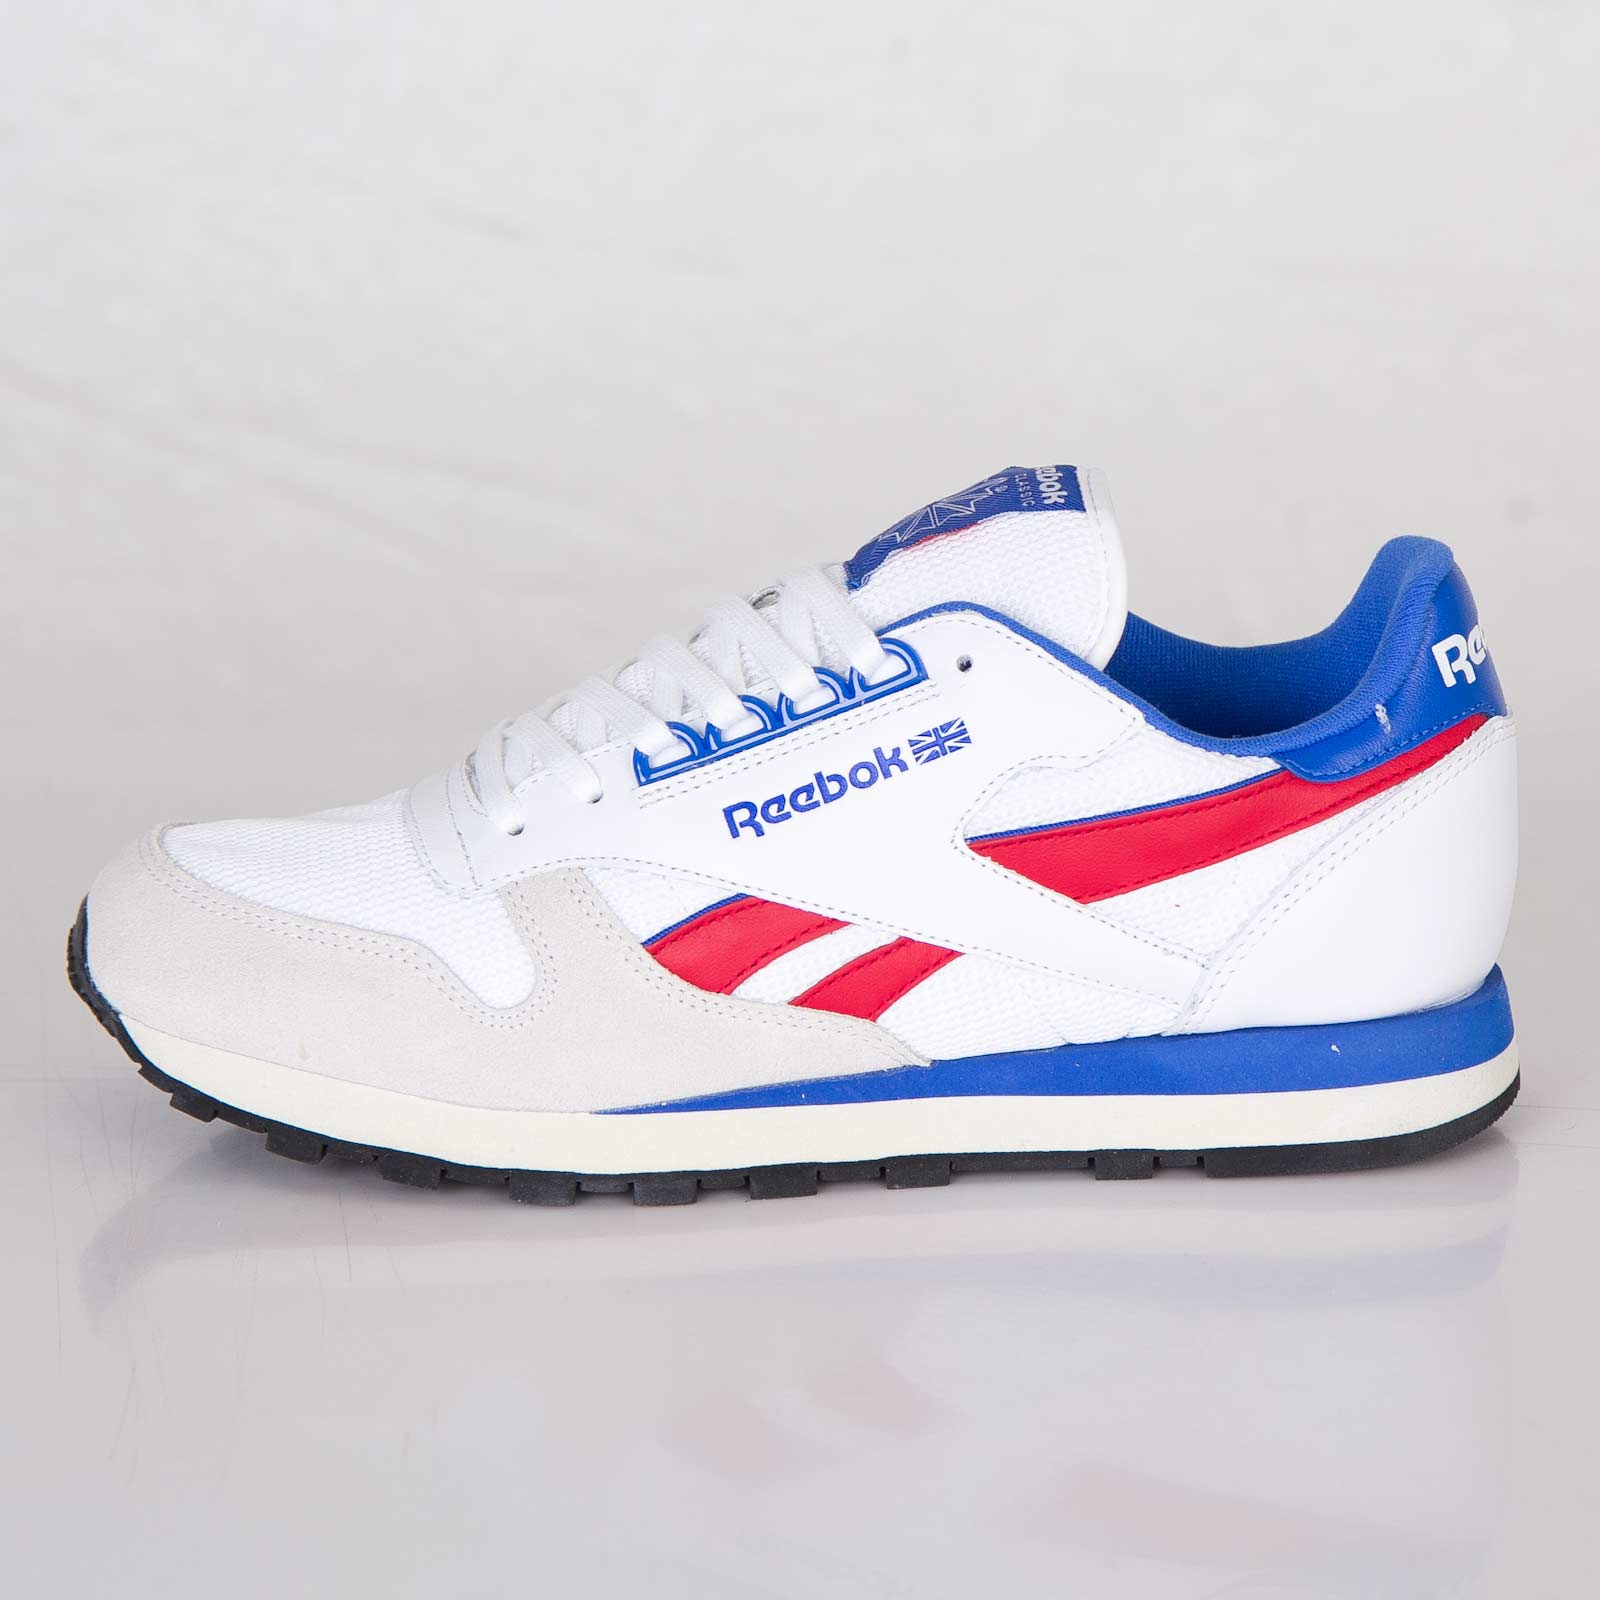 detailed look 7e85c 263ff Reebok Classic Leather RE - V60000 - Sneakersnstuff ...